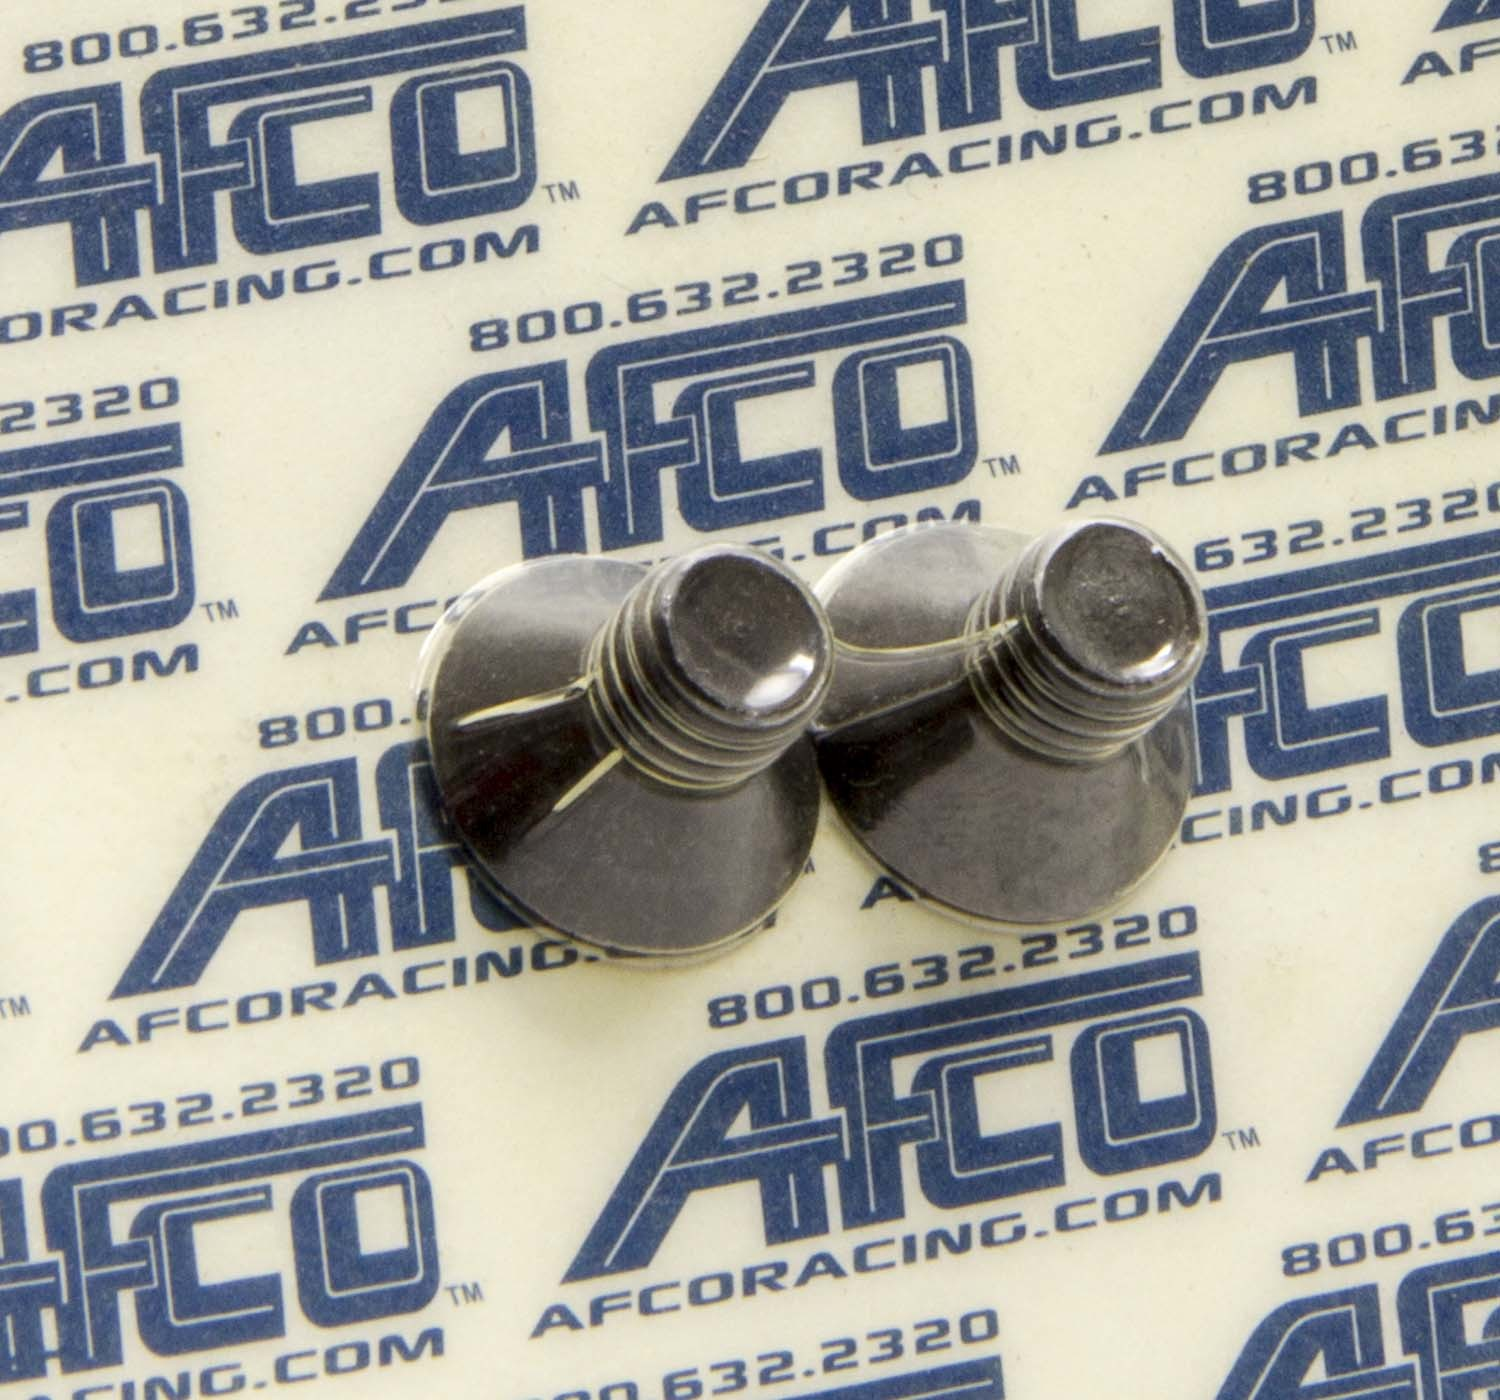 Afco Racing Products Drive Flange Bolt Kit